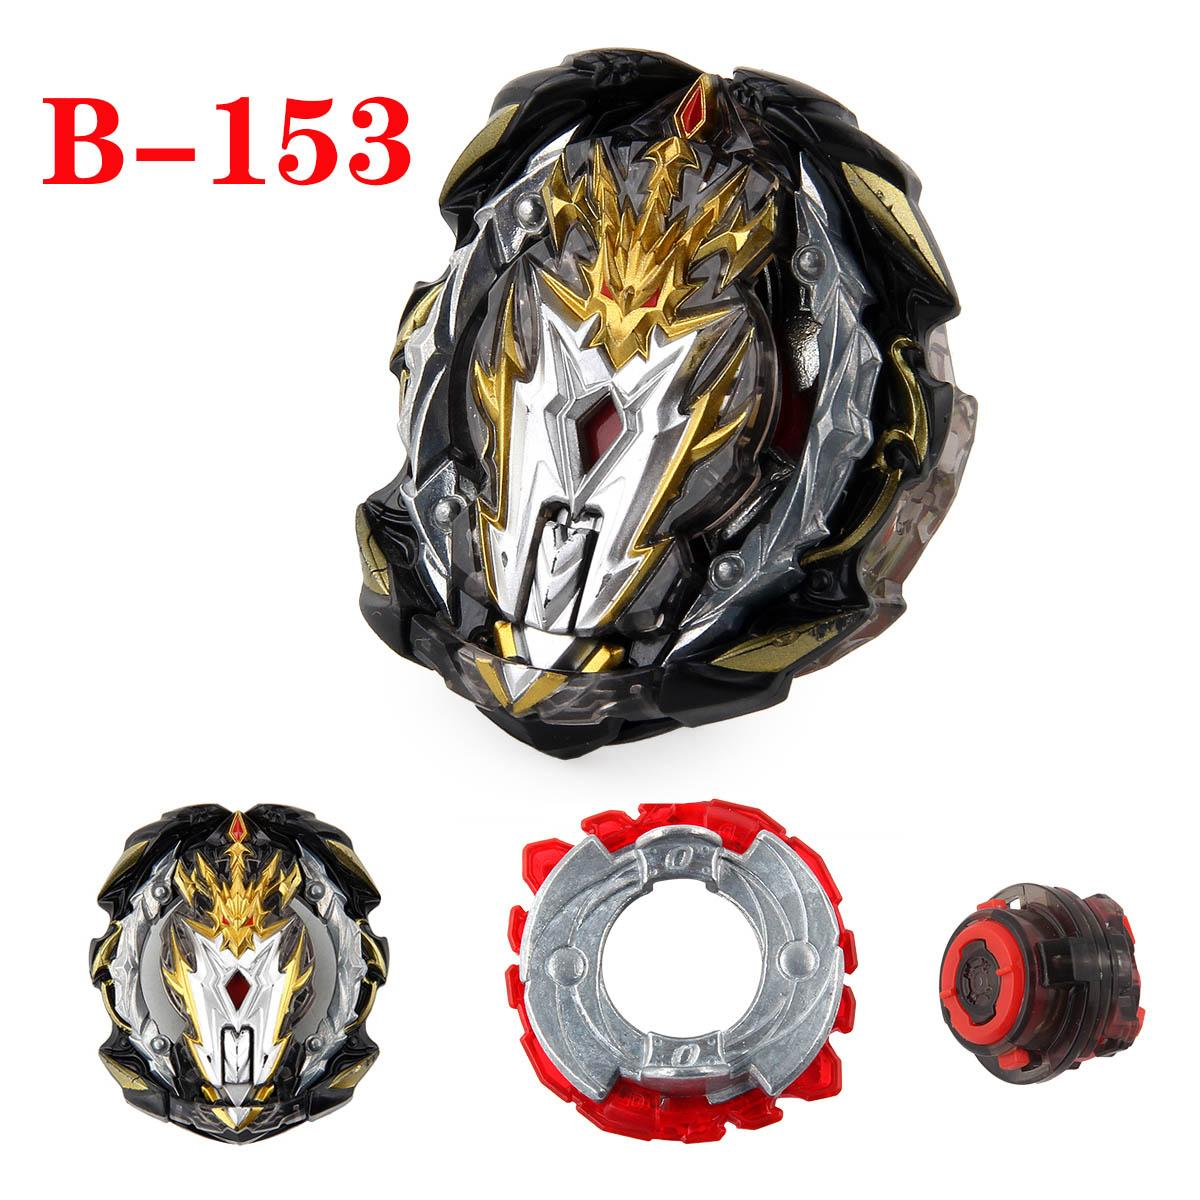 Hot All Models Pitcher B-150 B-153 B-149 Beyblade Burst Toy Baybladel Rotating Gyro Blade Blade Children High Performance Toy